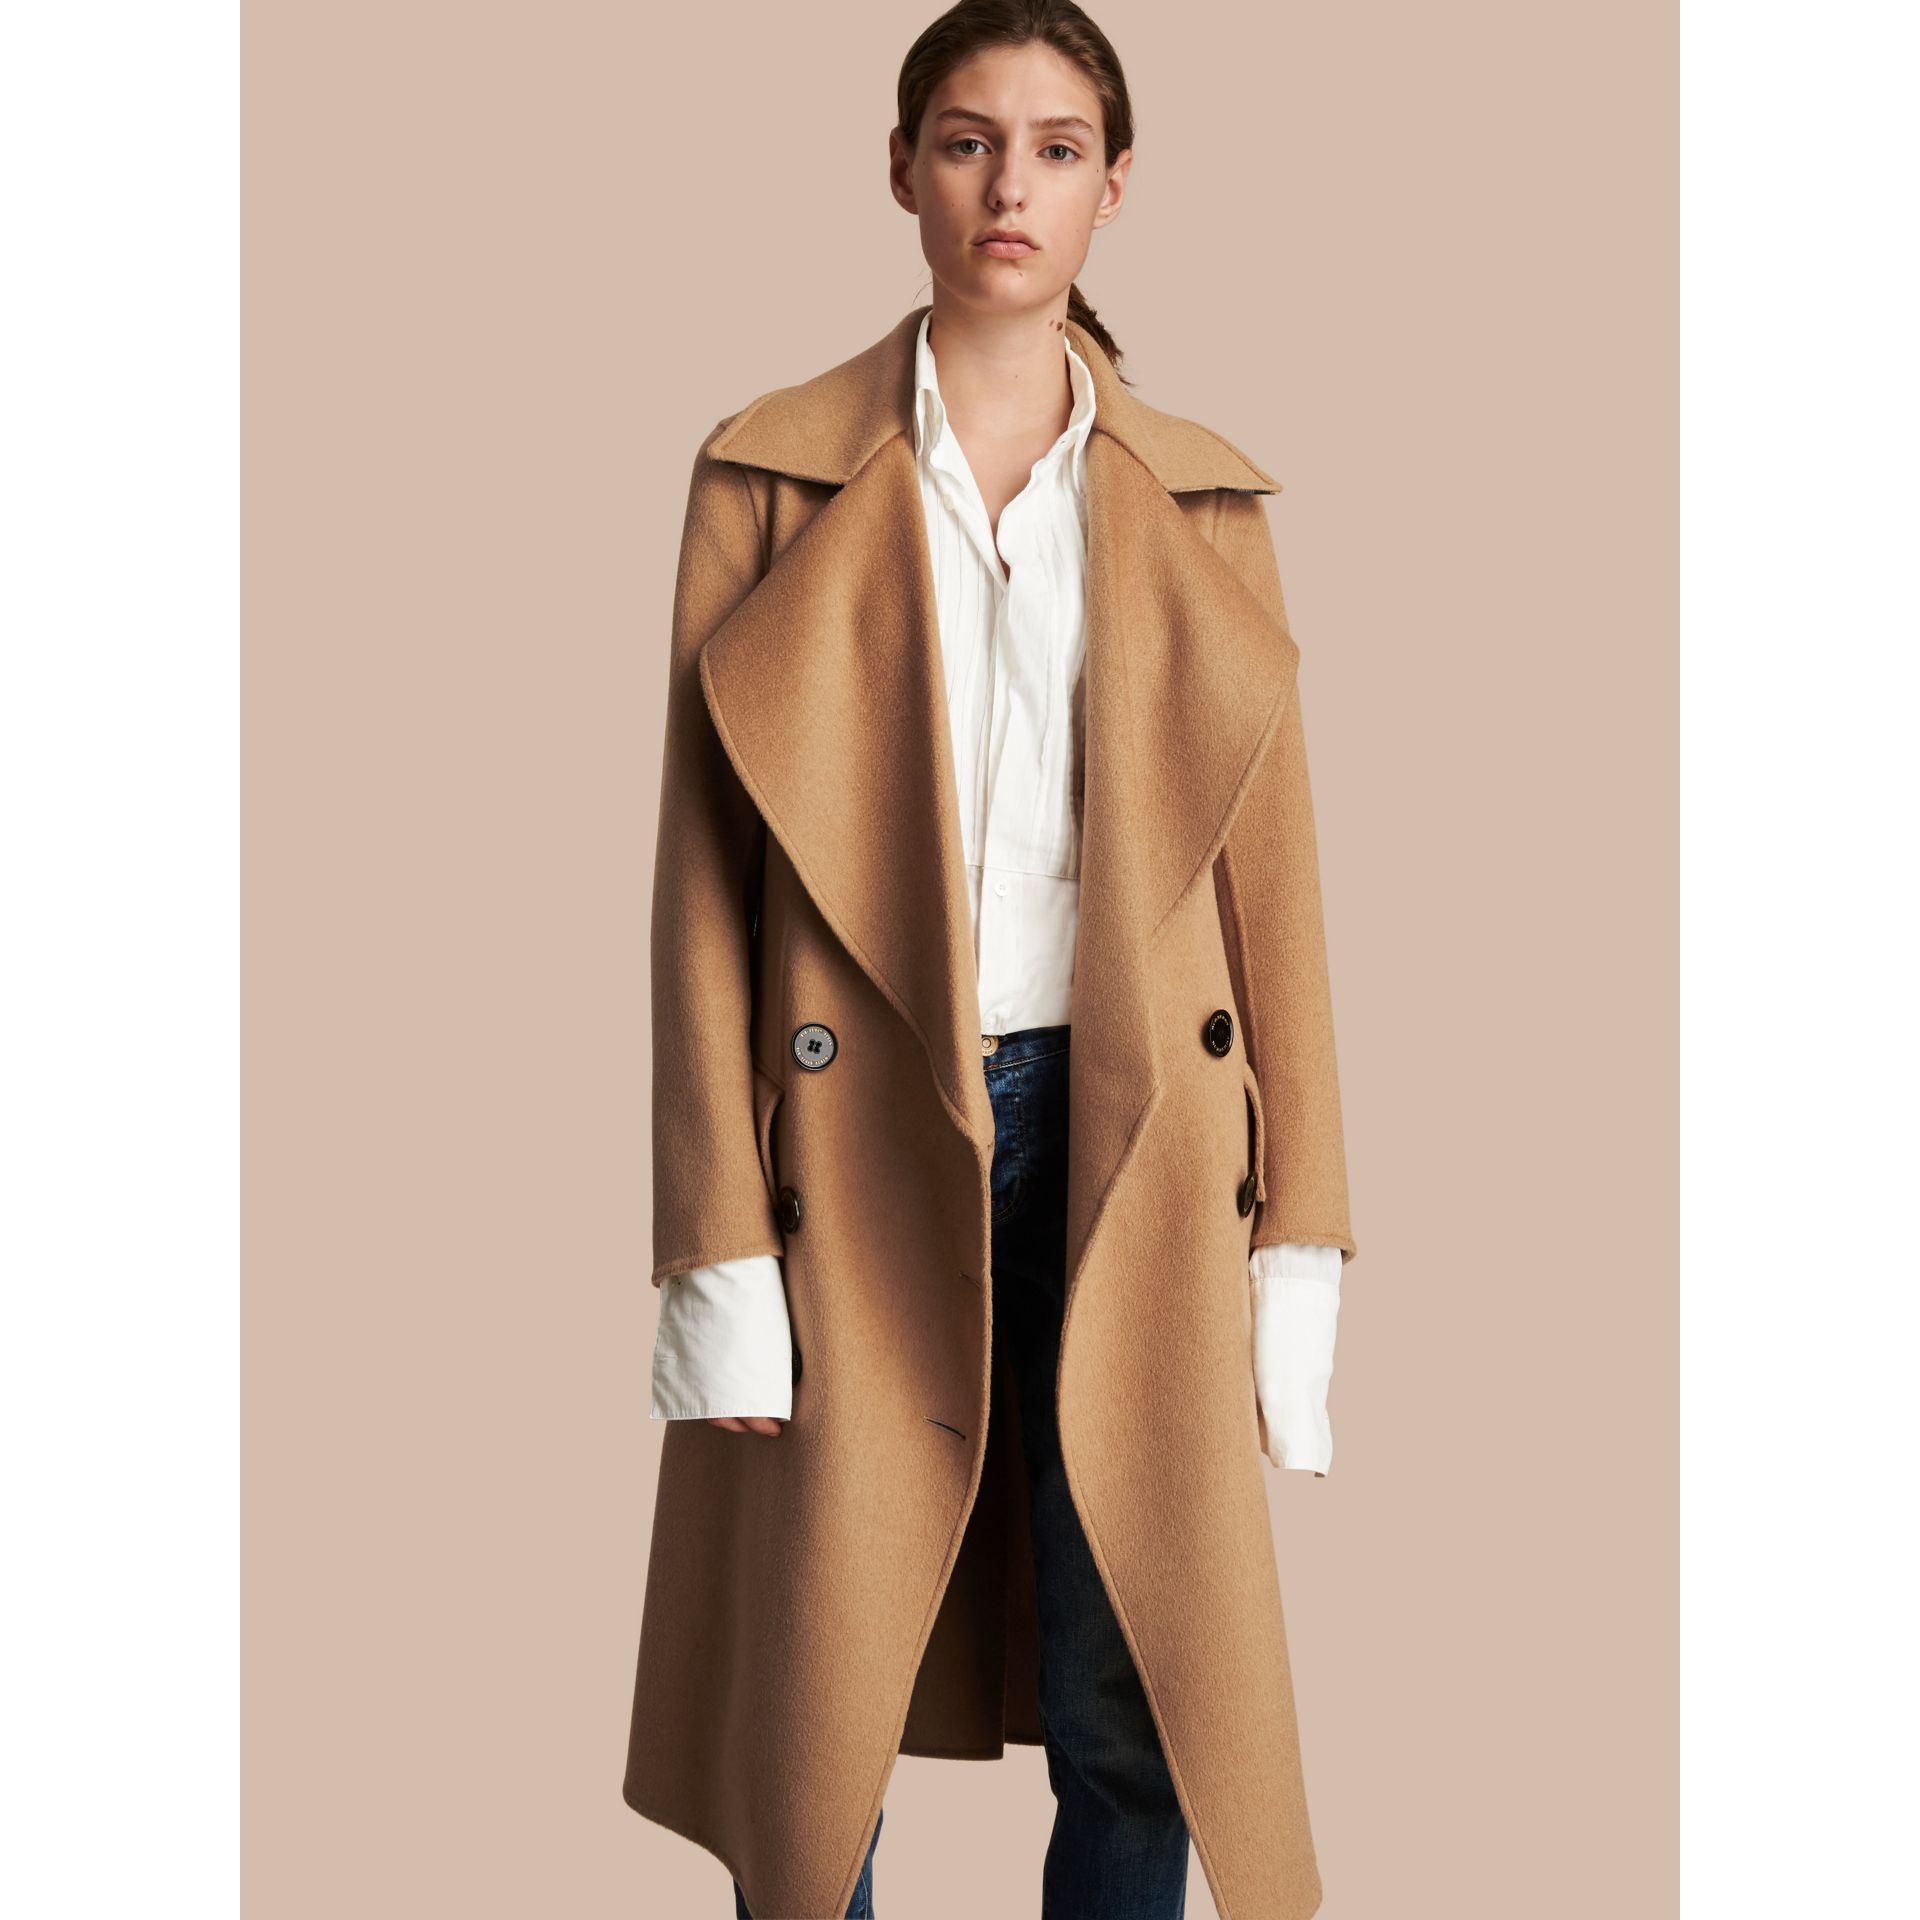 Draped Front Camel Hair and Wool Tailored Coat - Women | Burberry - gallery image 7